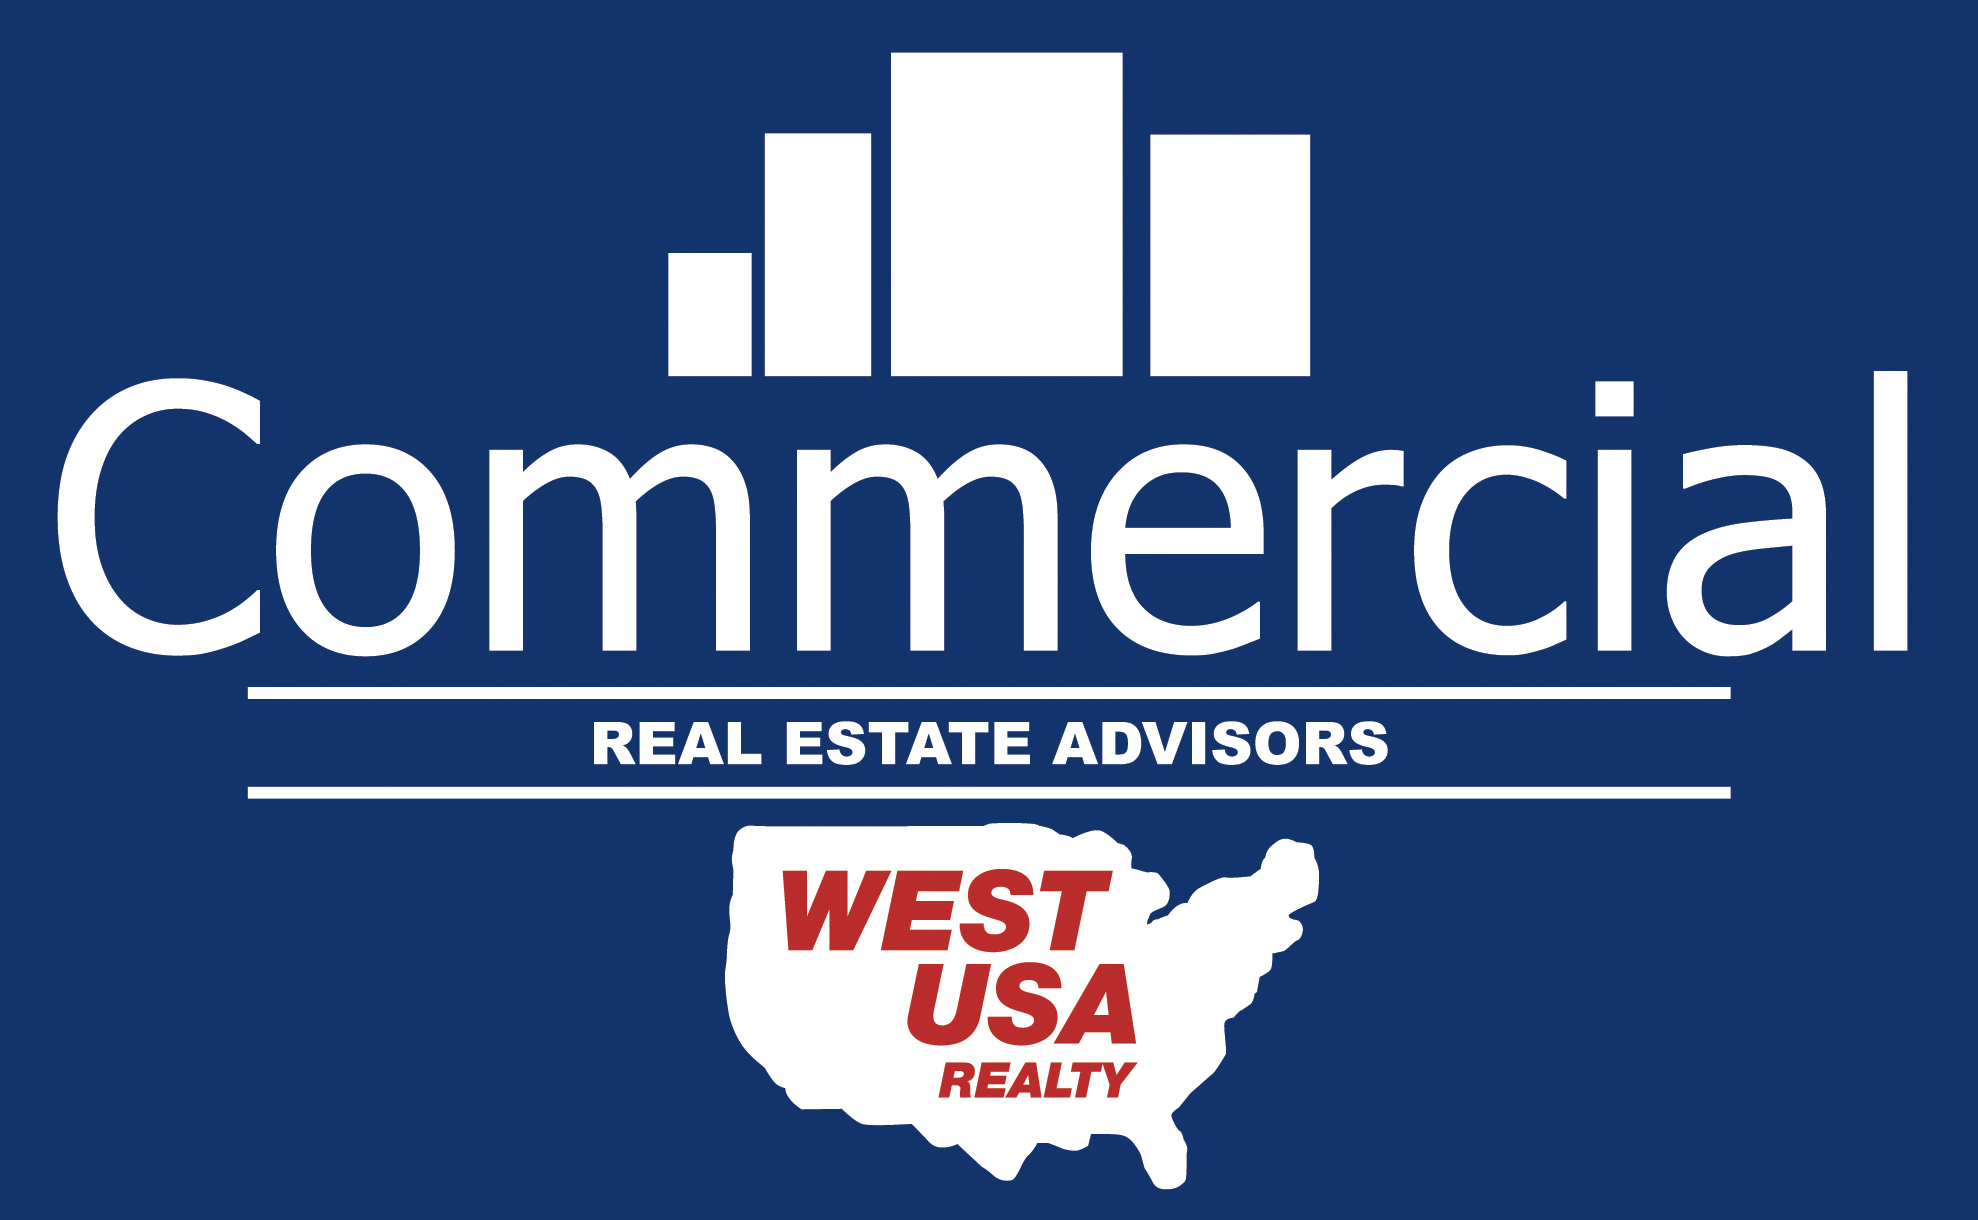 West USA Realty Commercial Division - Commercial real estate advisors